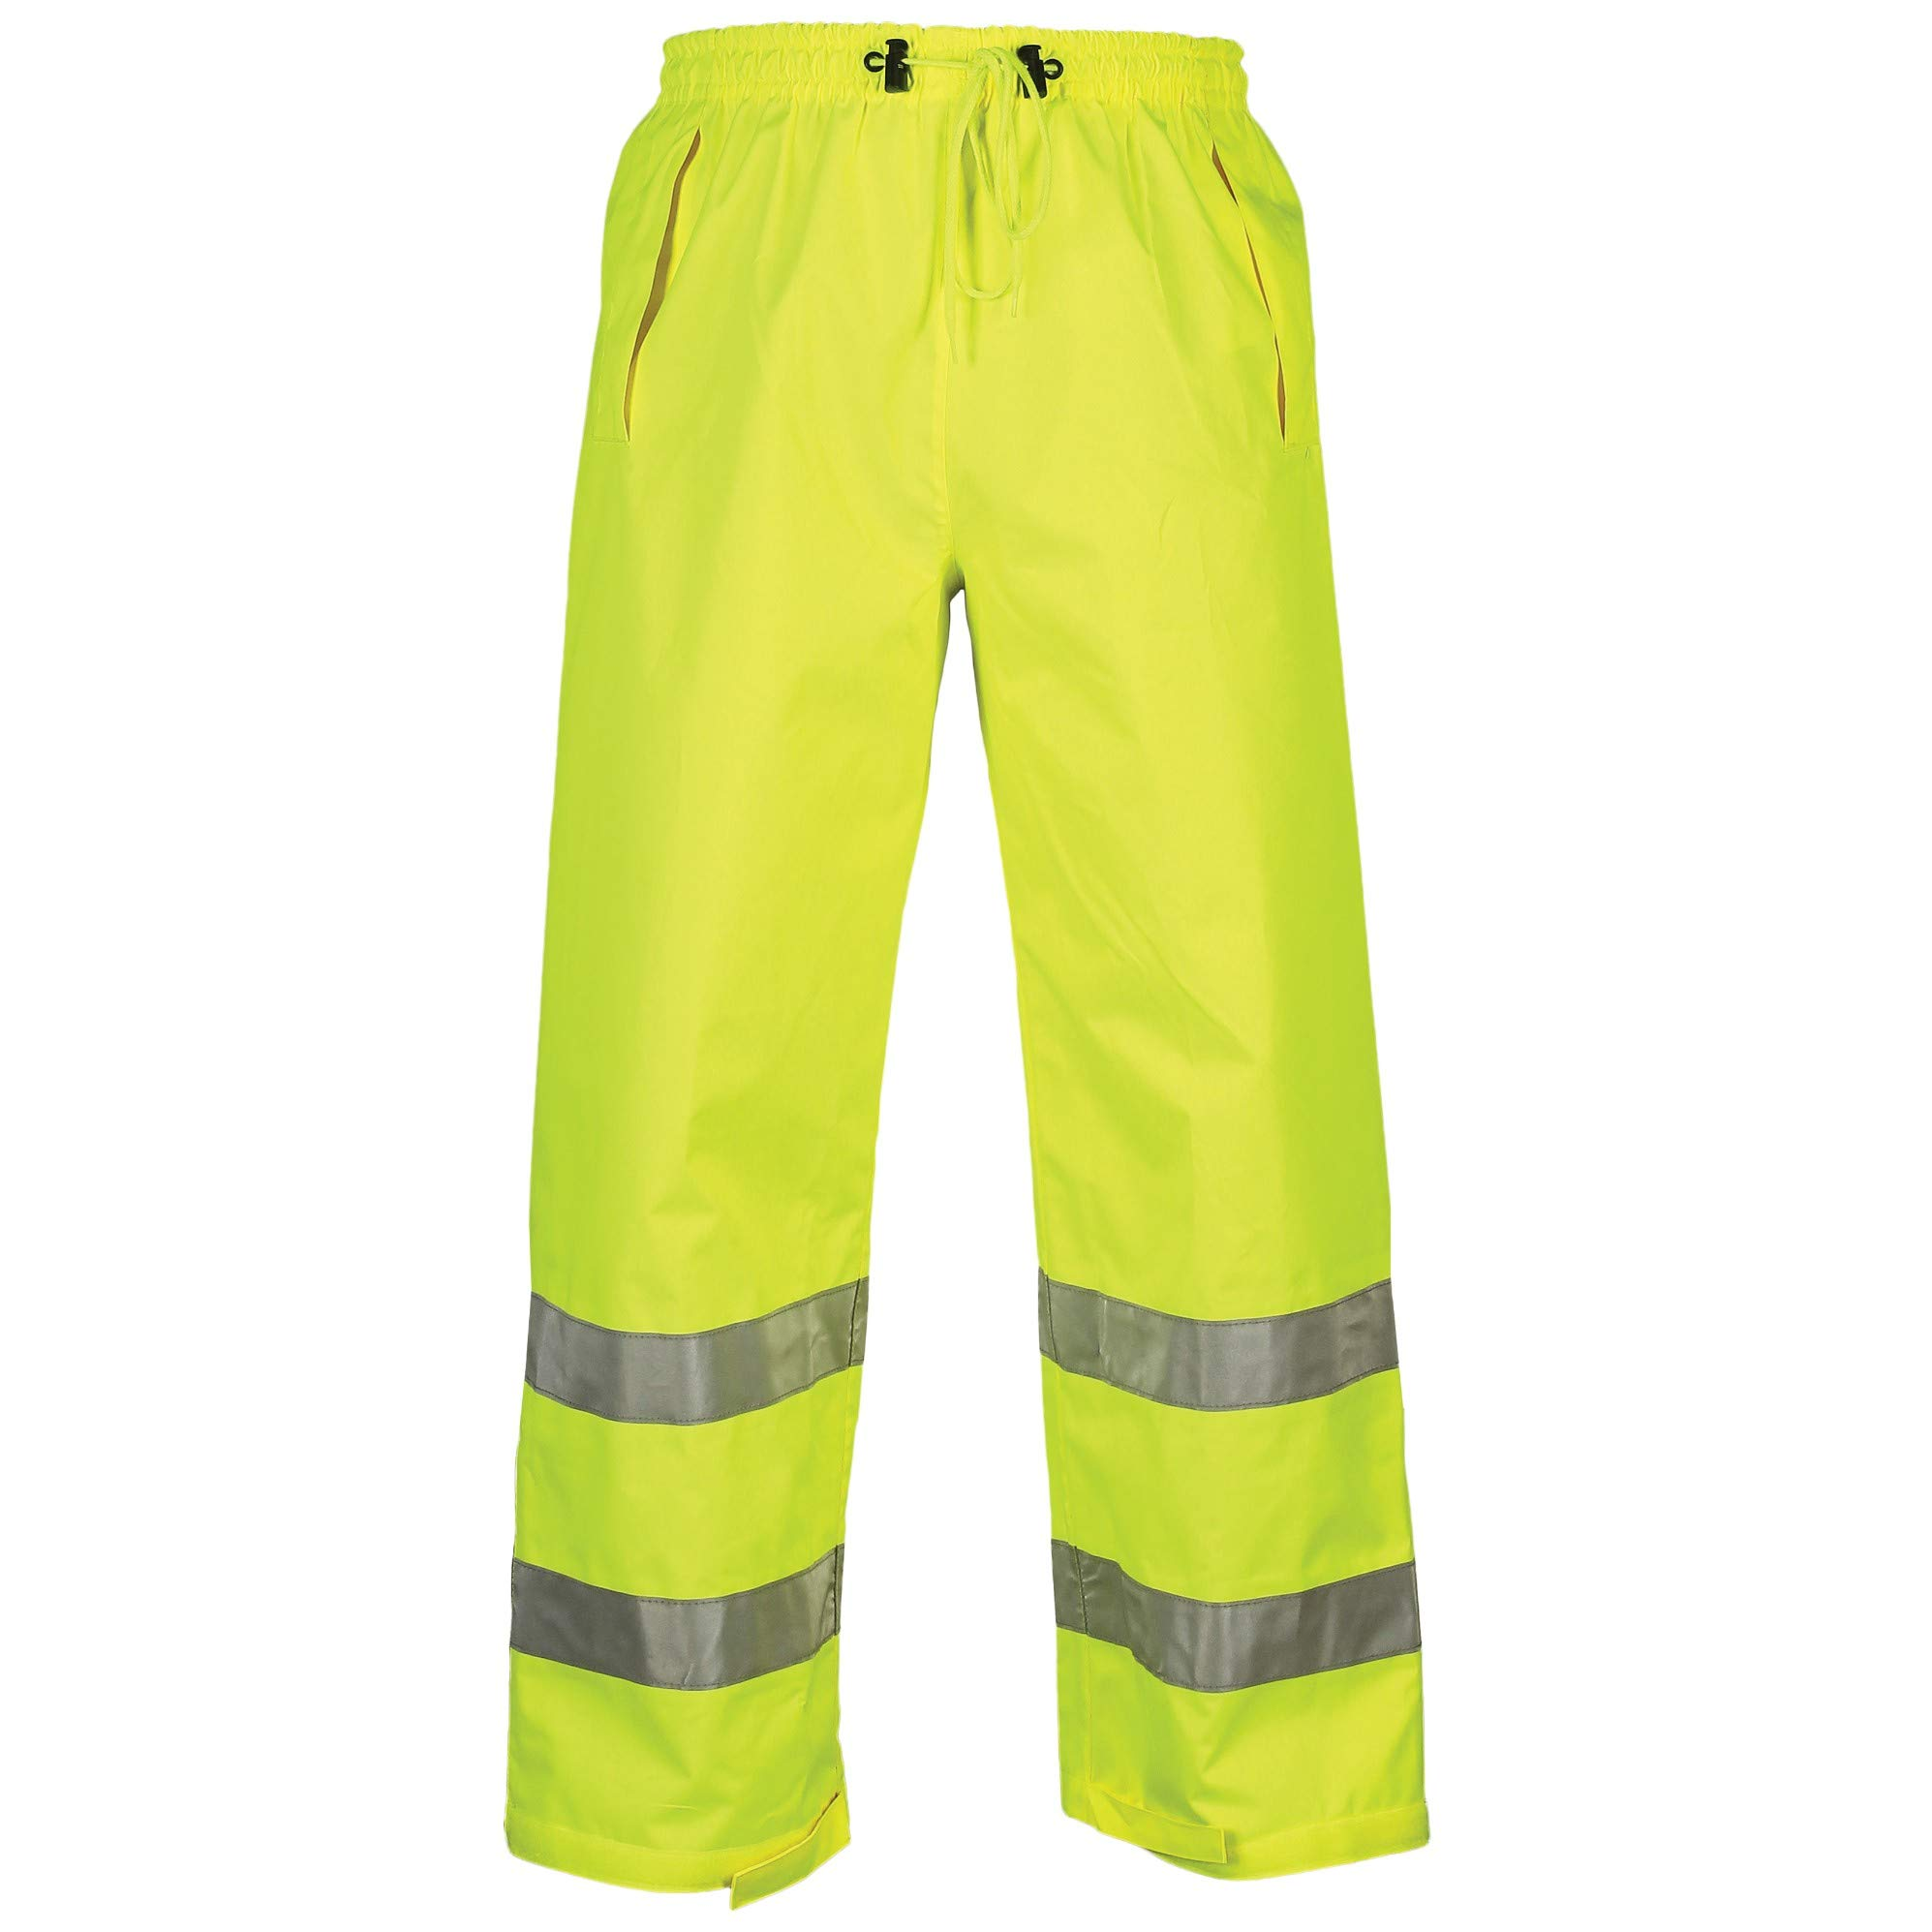 High Viz Rain Pants for Men and Women Waterproof Work Wear Water Resistant Ansi Class E Two Tone (Extra Large, Lime Yellow, 1 Piece) by Brite Safety (Image #1)